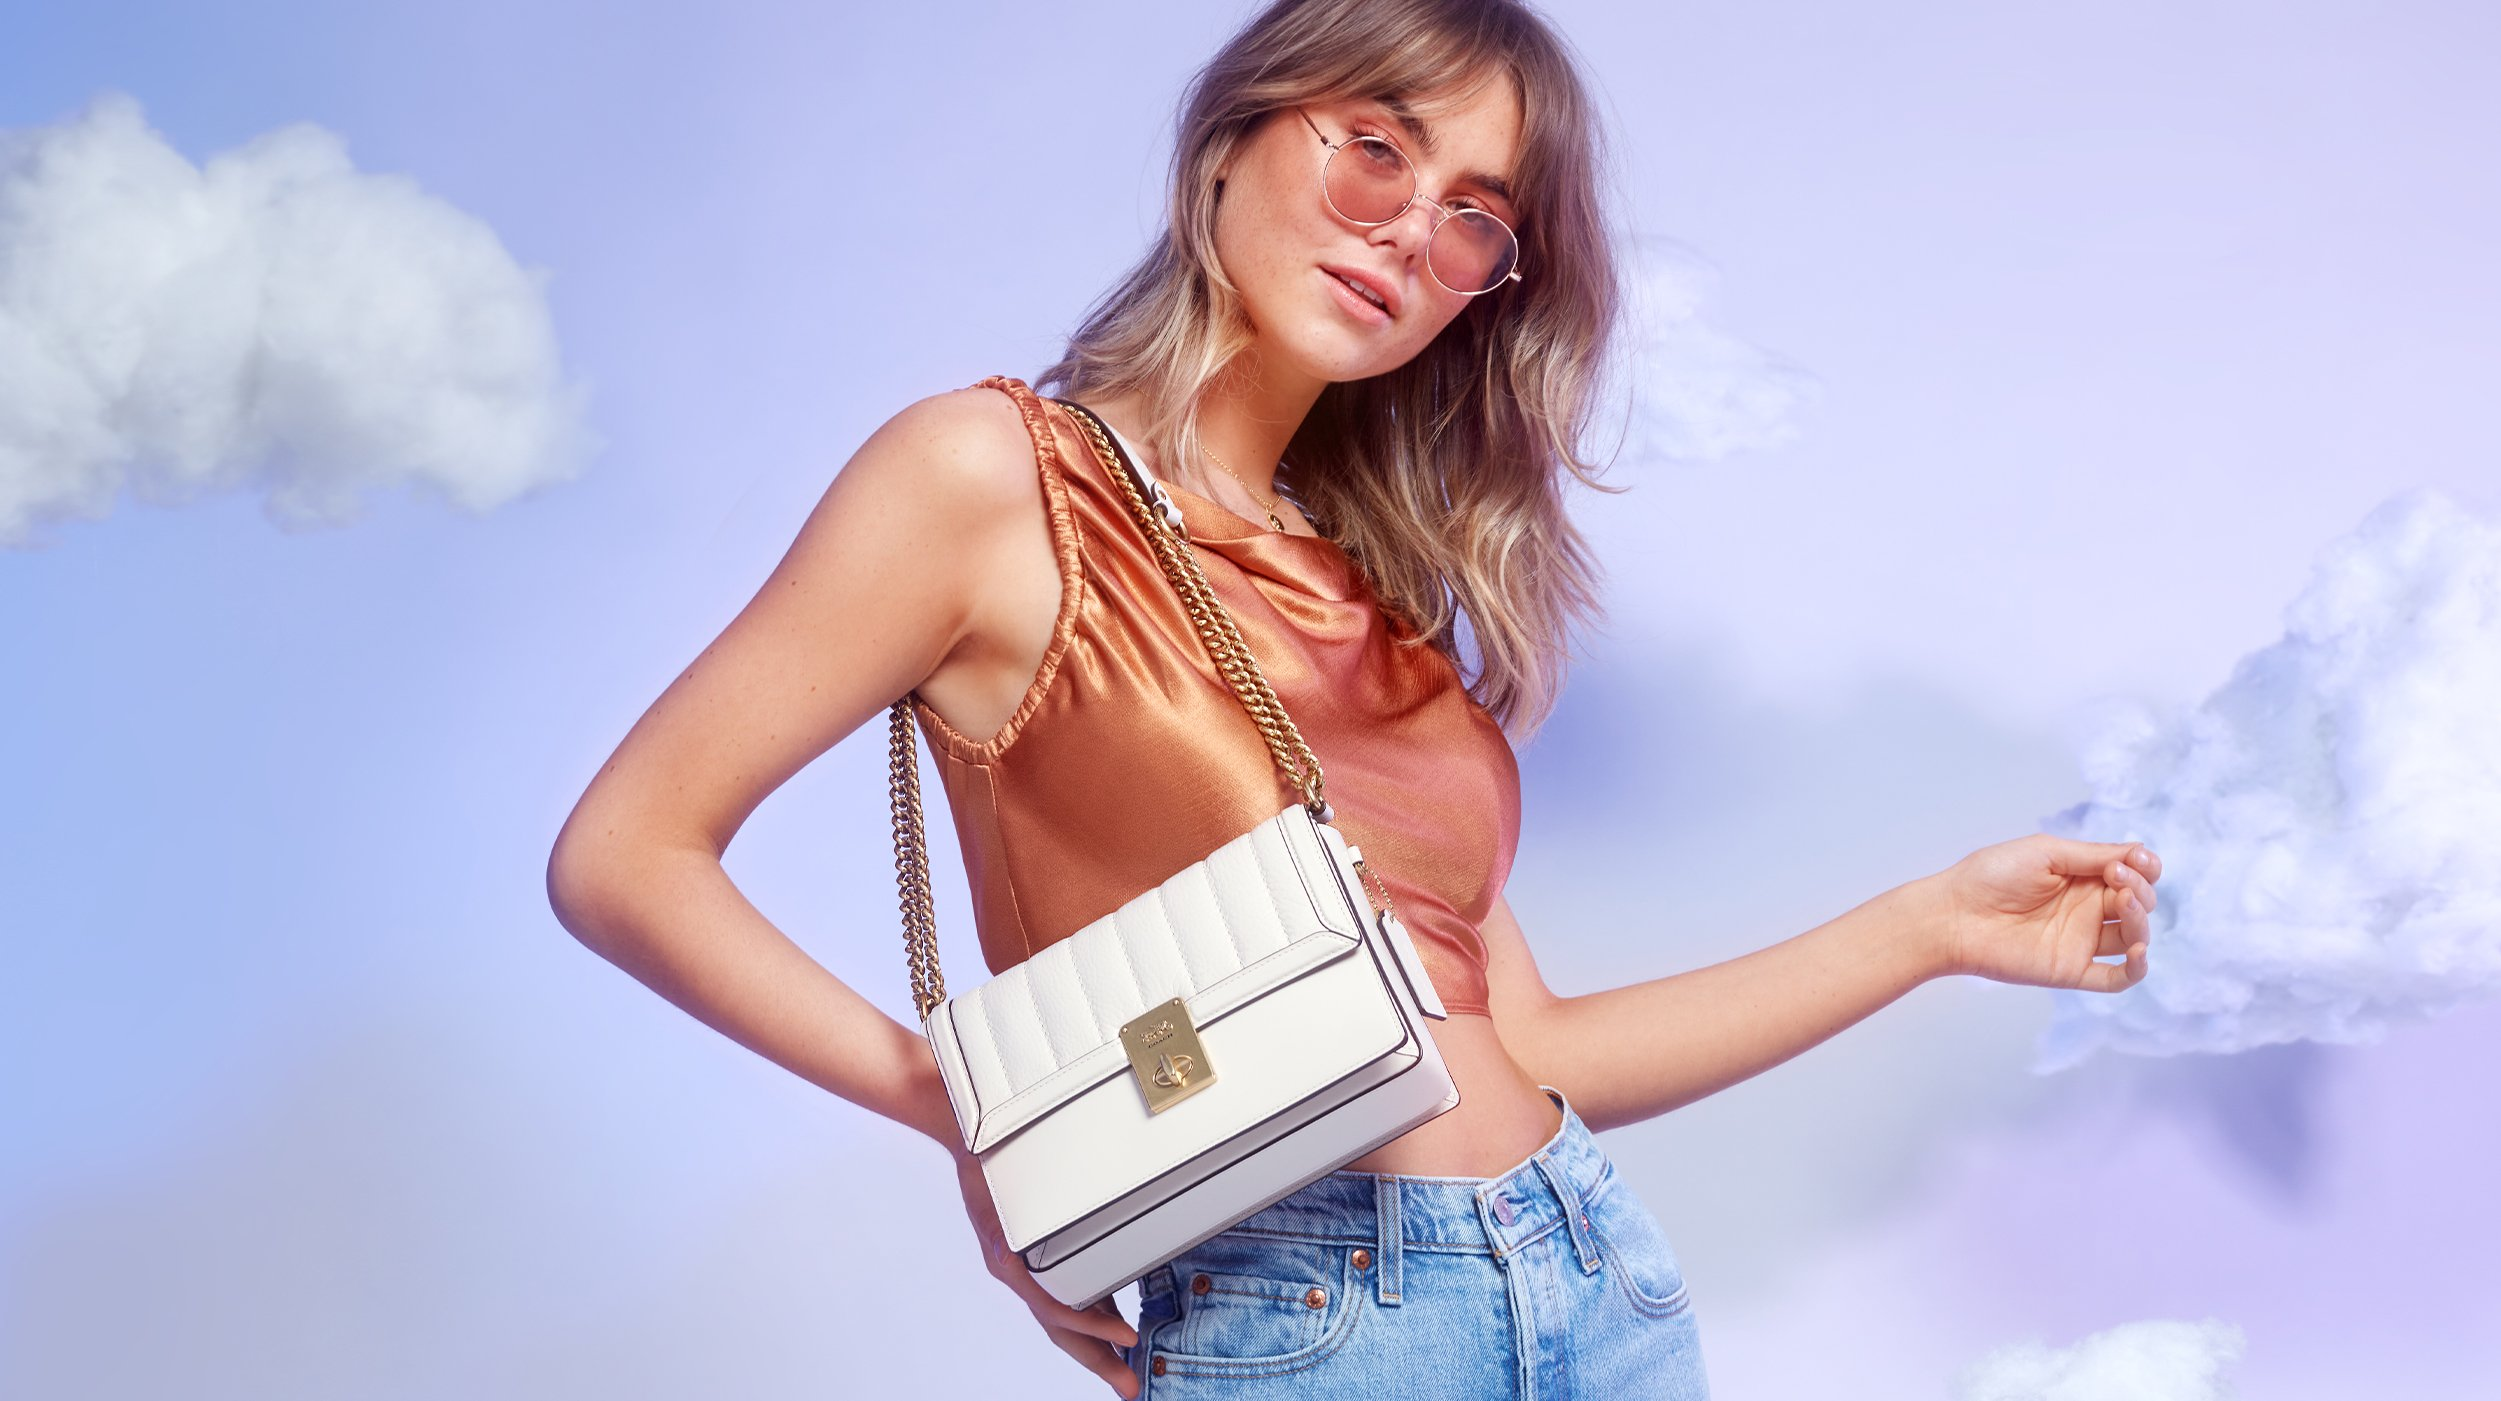 The Top 5 Minimalist Handbags For Understated Style